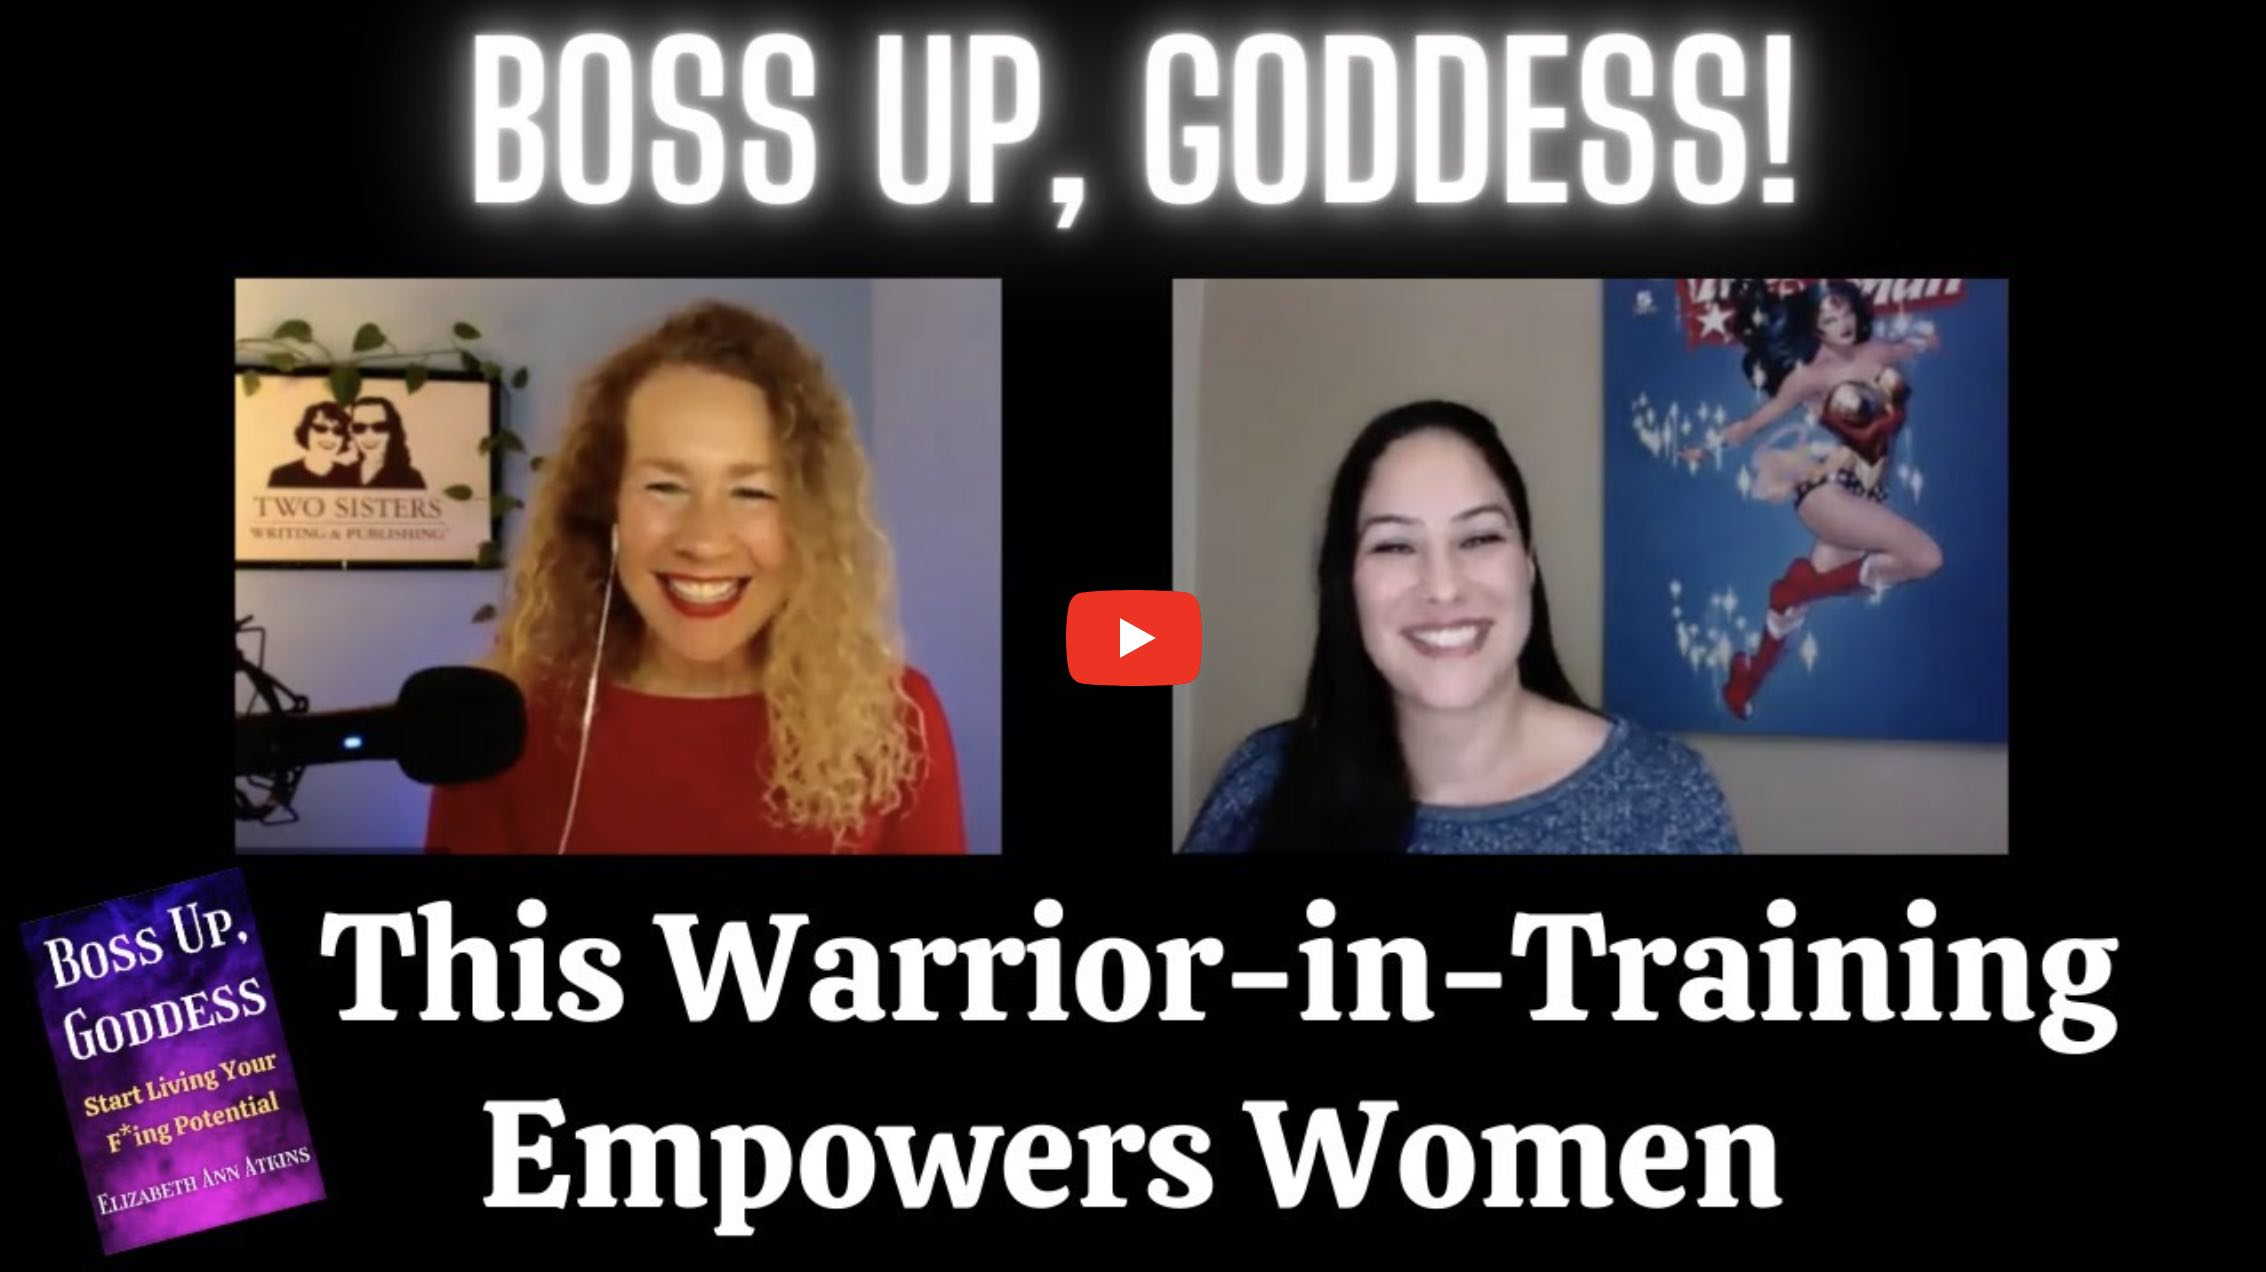 Boss Up, Goddess Interview with Elizabeth Ann Atkins from The Two Sisters.